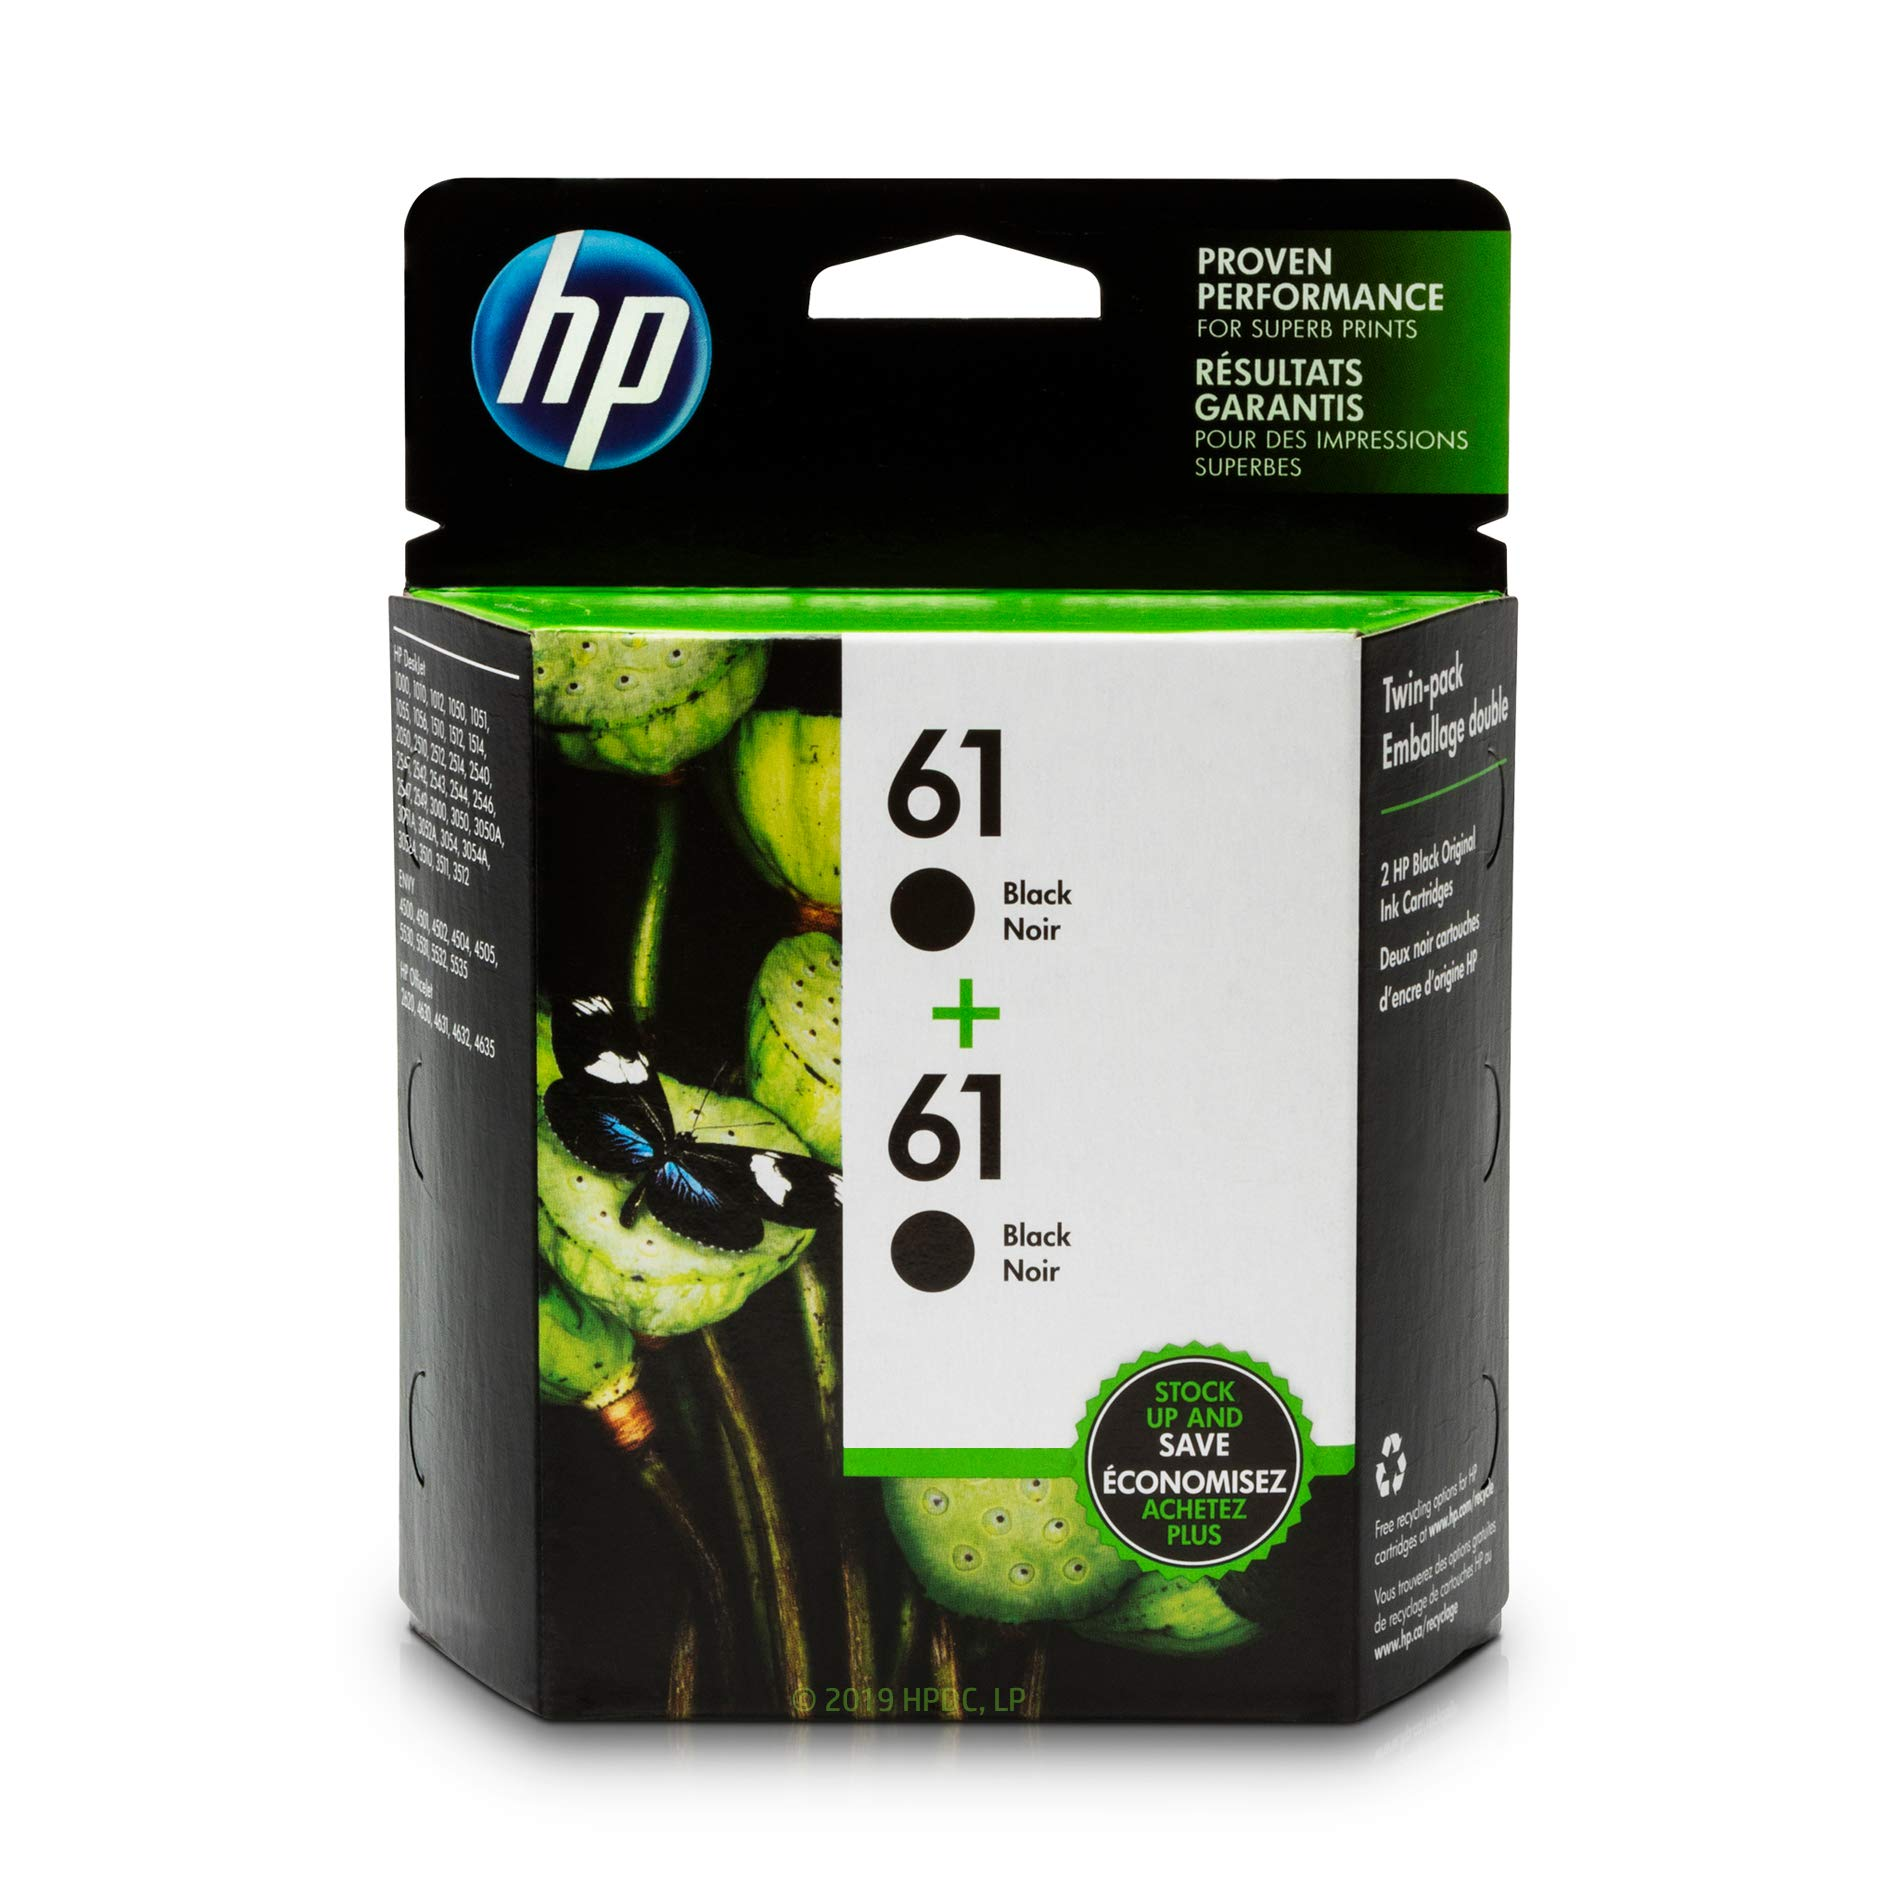 HP 61 Black Ink Cartridge (CH561WN), 2 Ink Cartridges (CZ073FN) for HP Deskjet 1000 1010 1012 1050 1051 1055 1056 1510 1512 1514 1051 2050 2510 2512 2514 2540 2541